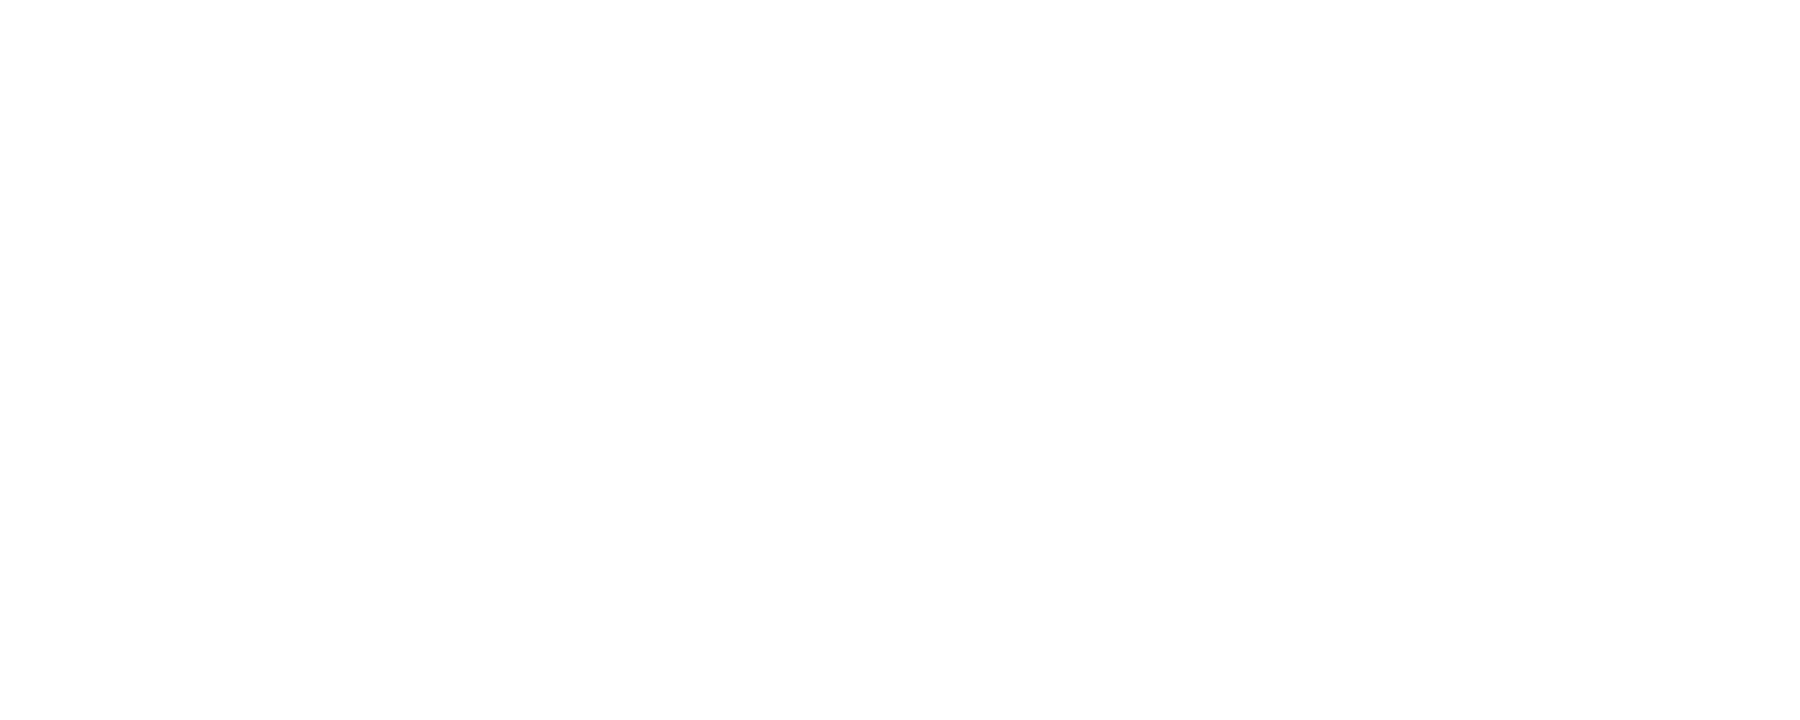 Ruby on Rails / Android / Java エンジニア募集